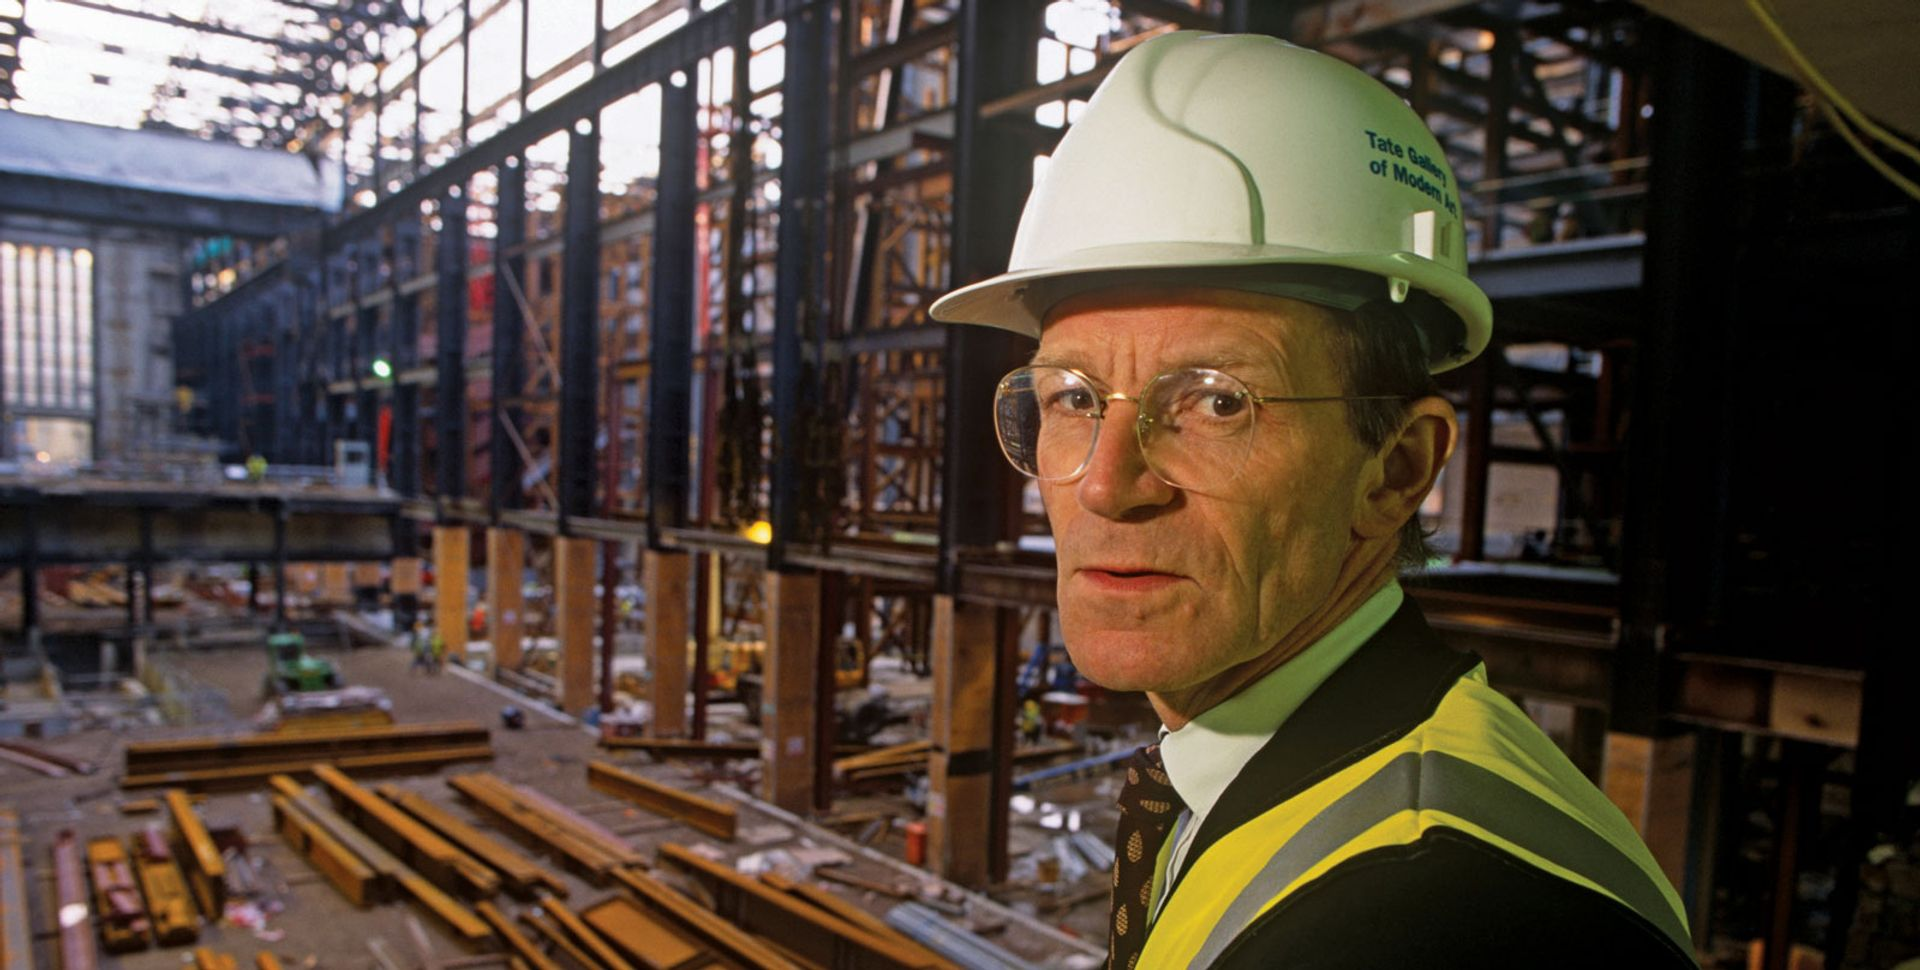 Nicholas Serota on a visit to the disused Bankside power station that eventually became Tate Modern Richard Baker/Alamy